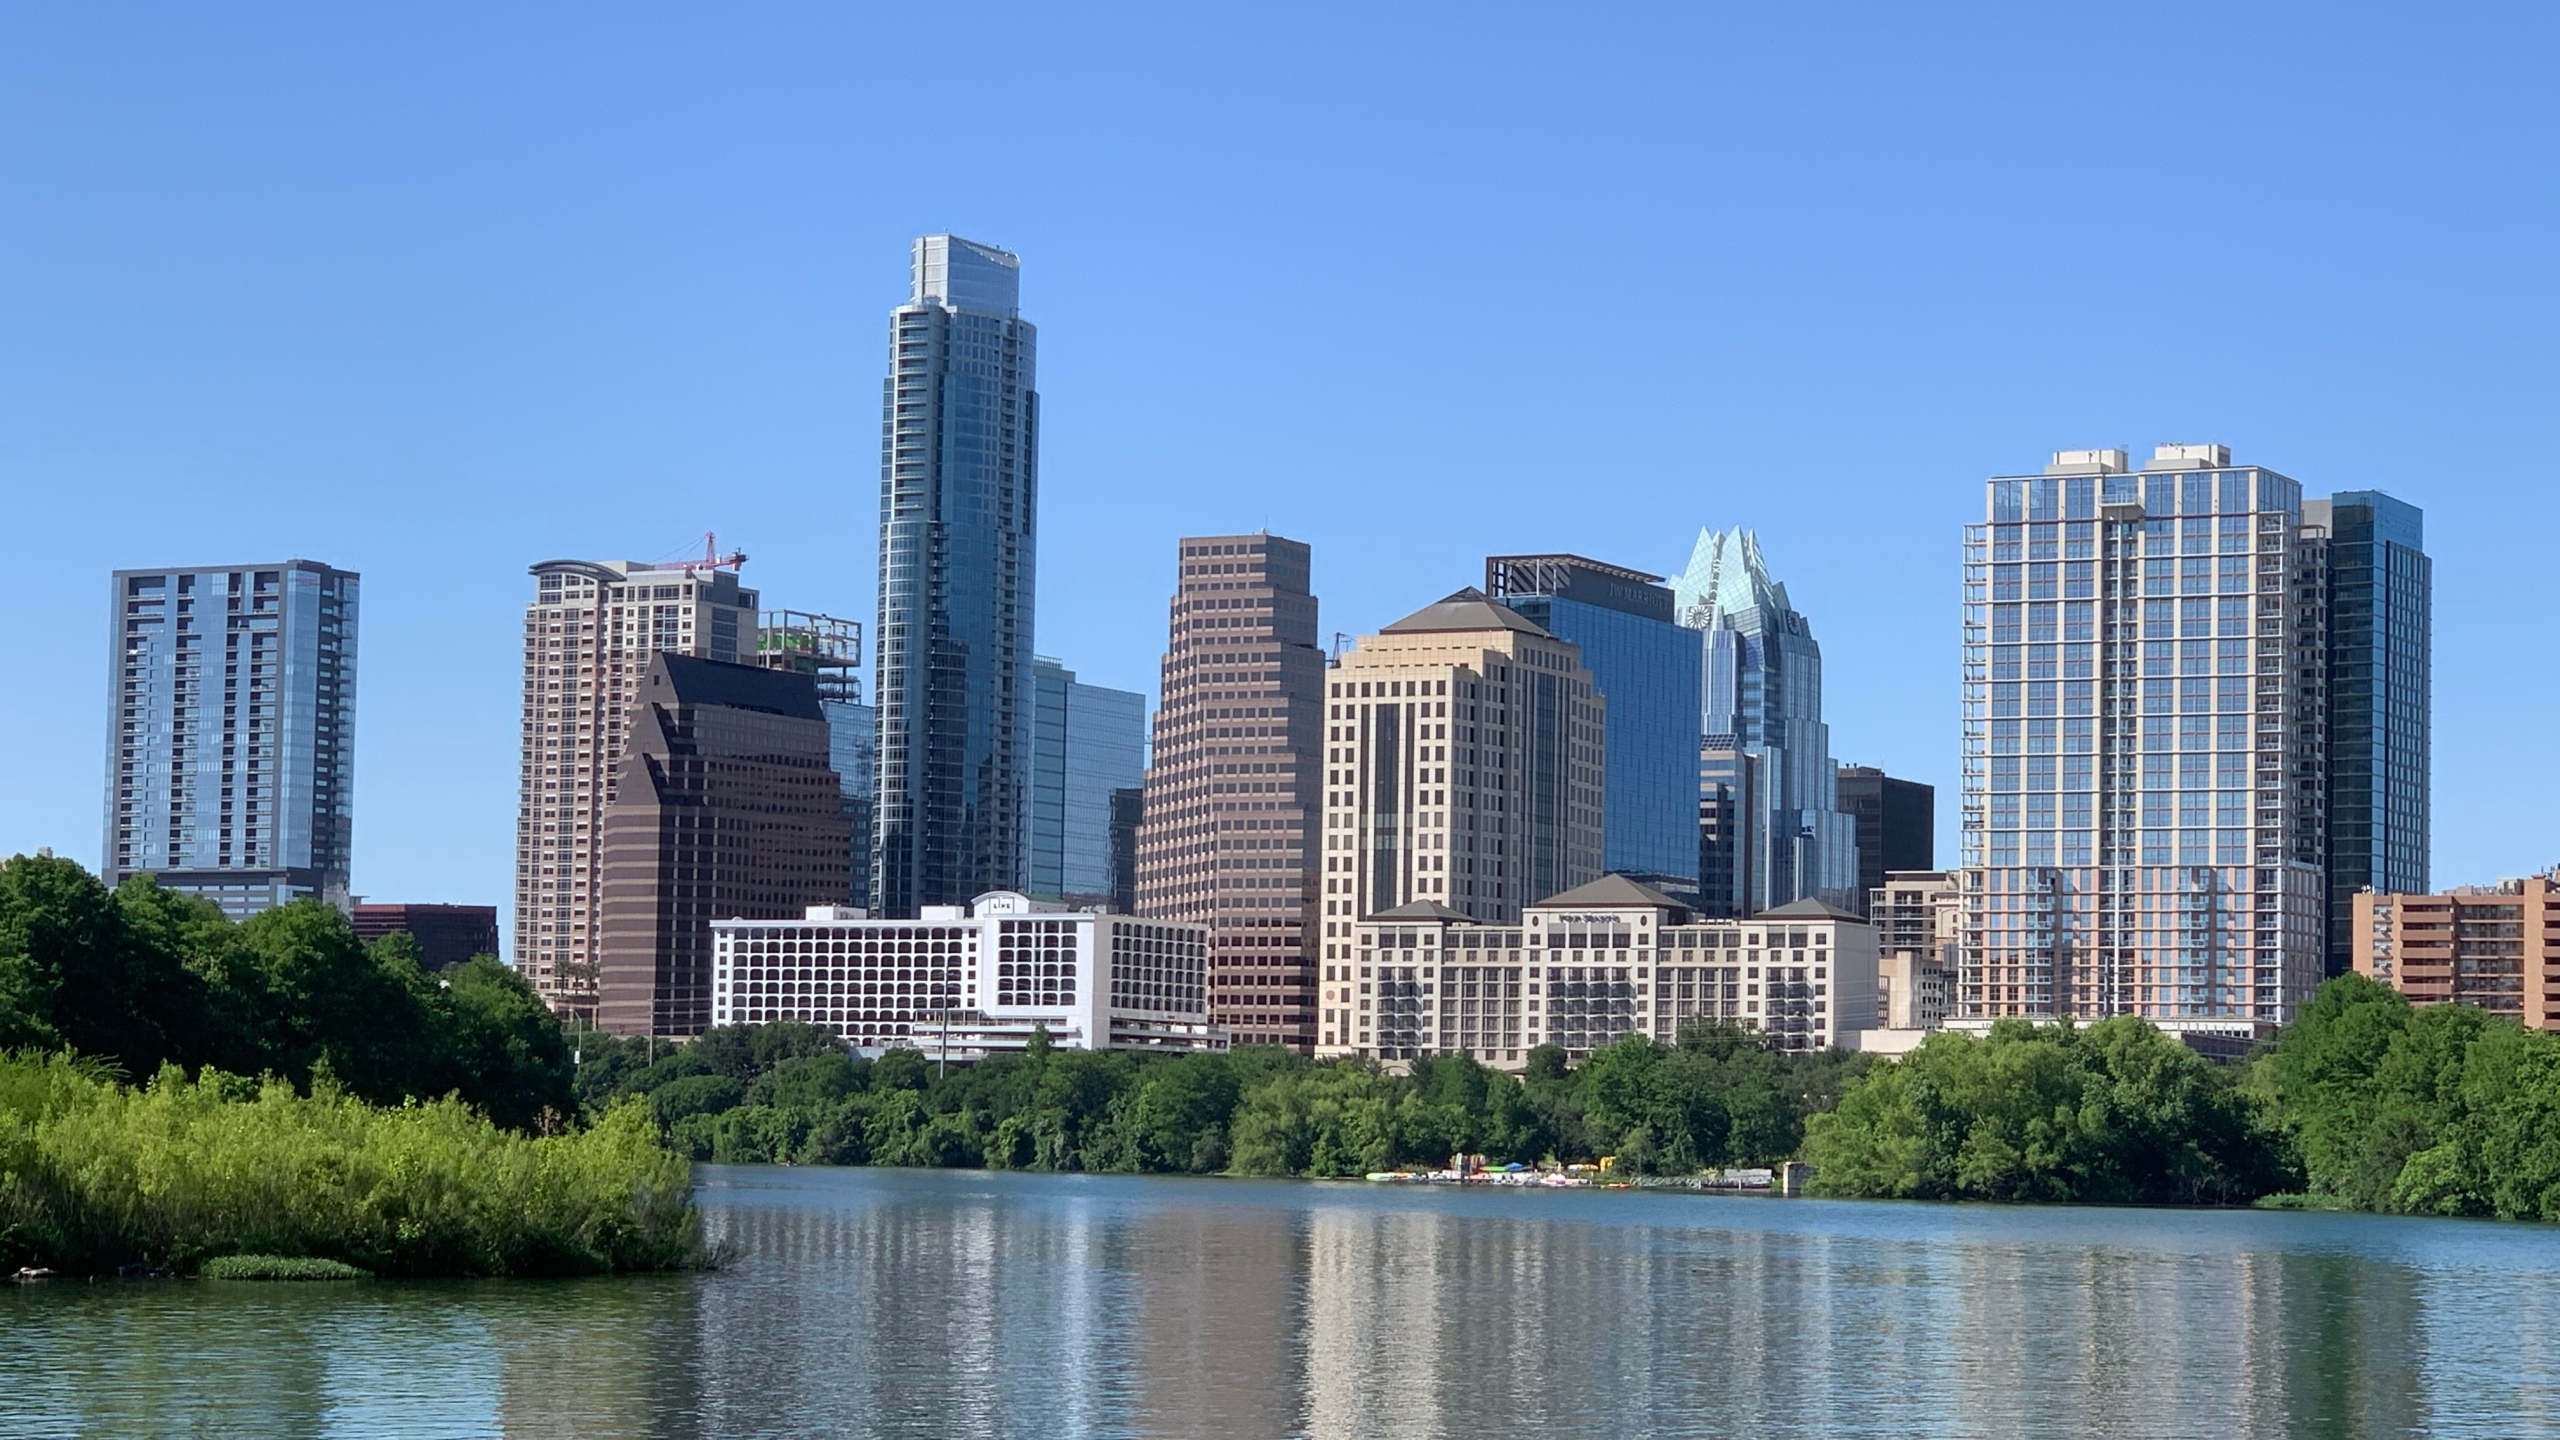 Downtown Austin skyline April 30, 2020 (KXAN Photo/Kristen Currie)